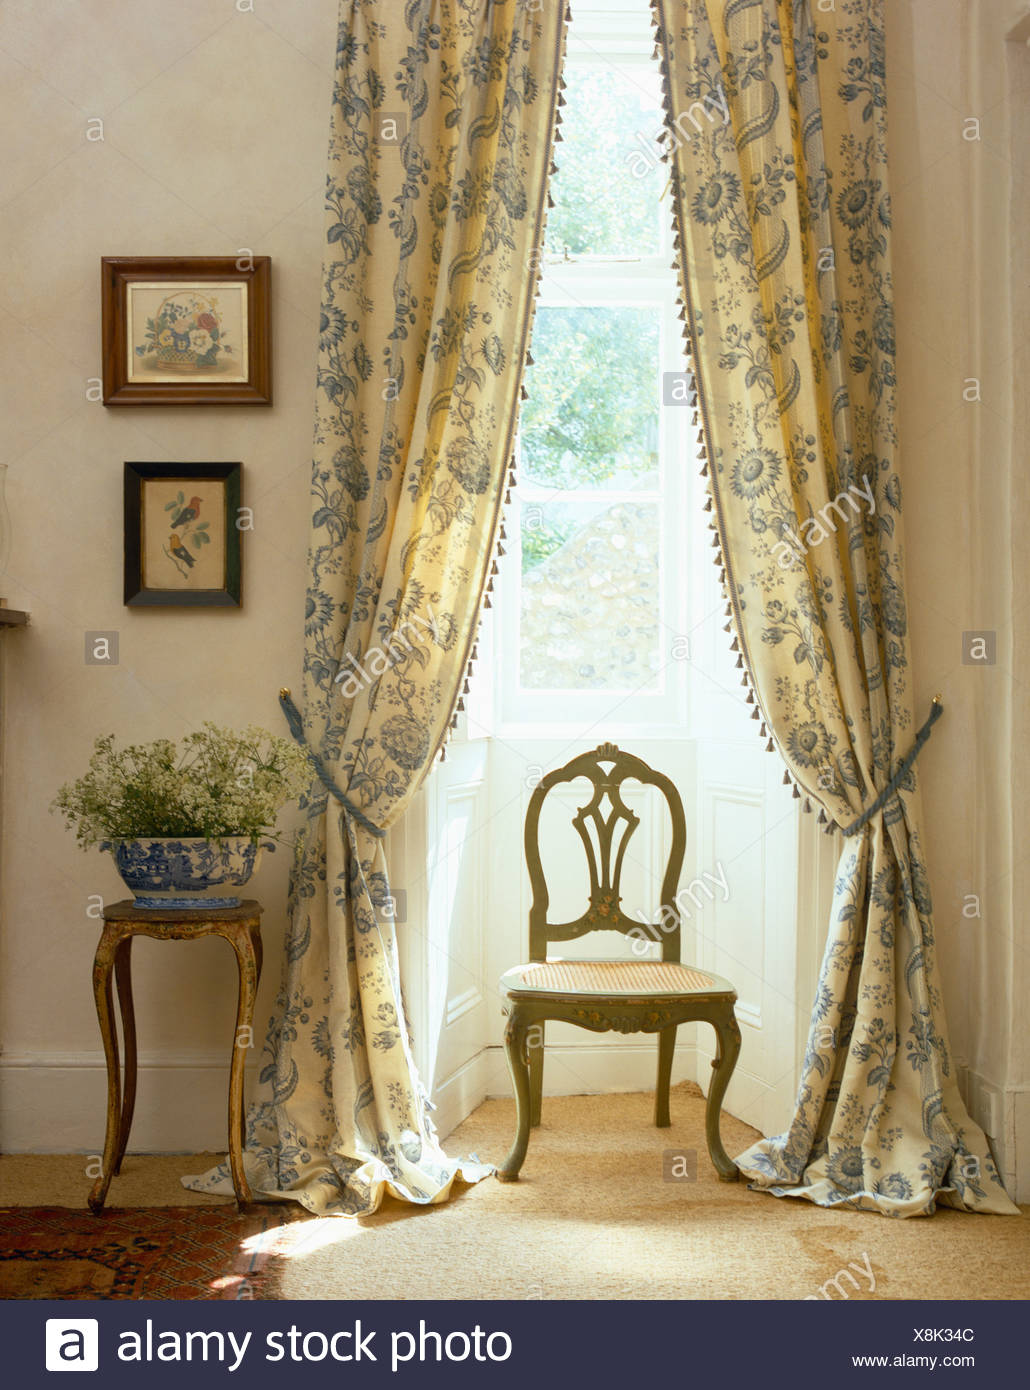 Antique chair in front of tall window with pastel blue patterned curtains edged with bobble trimming